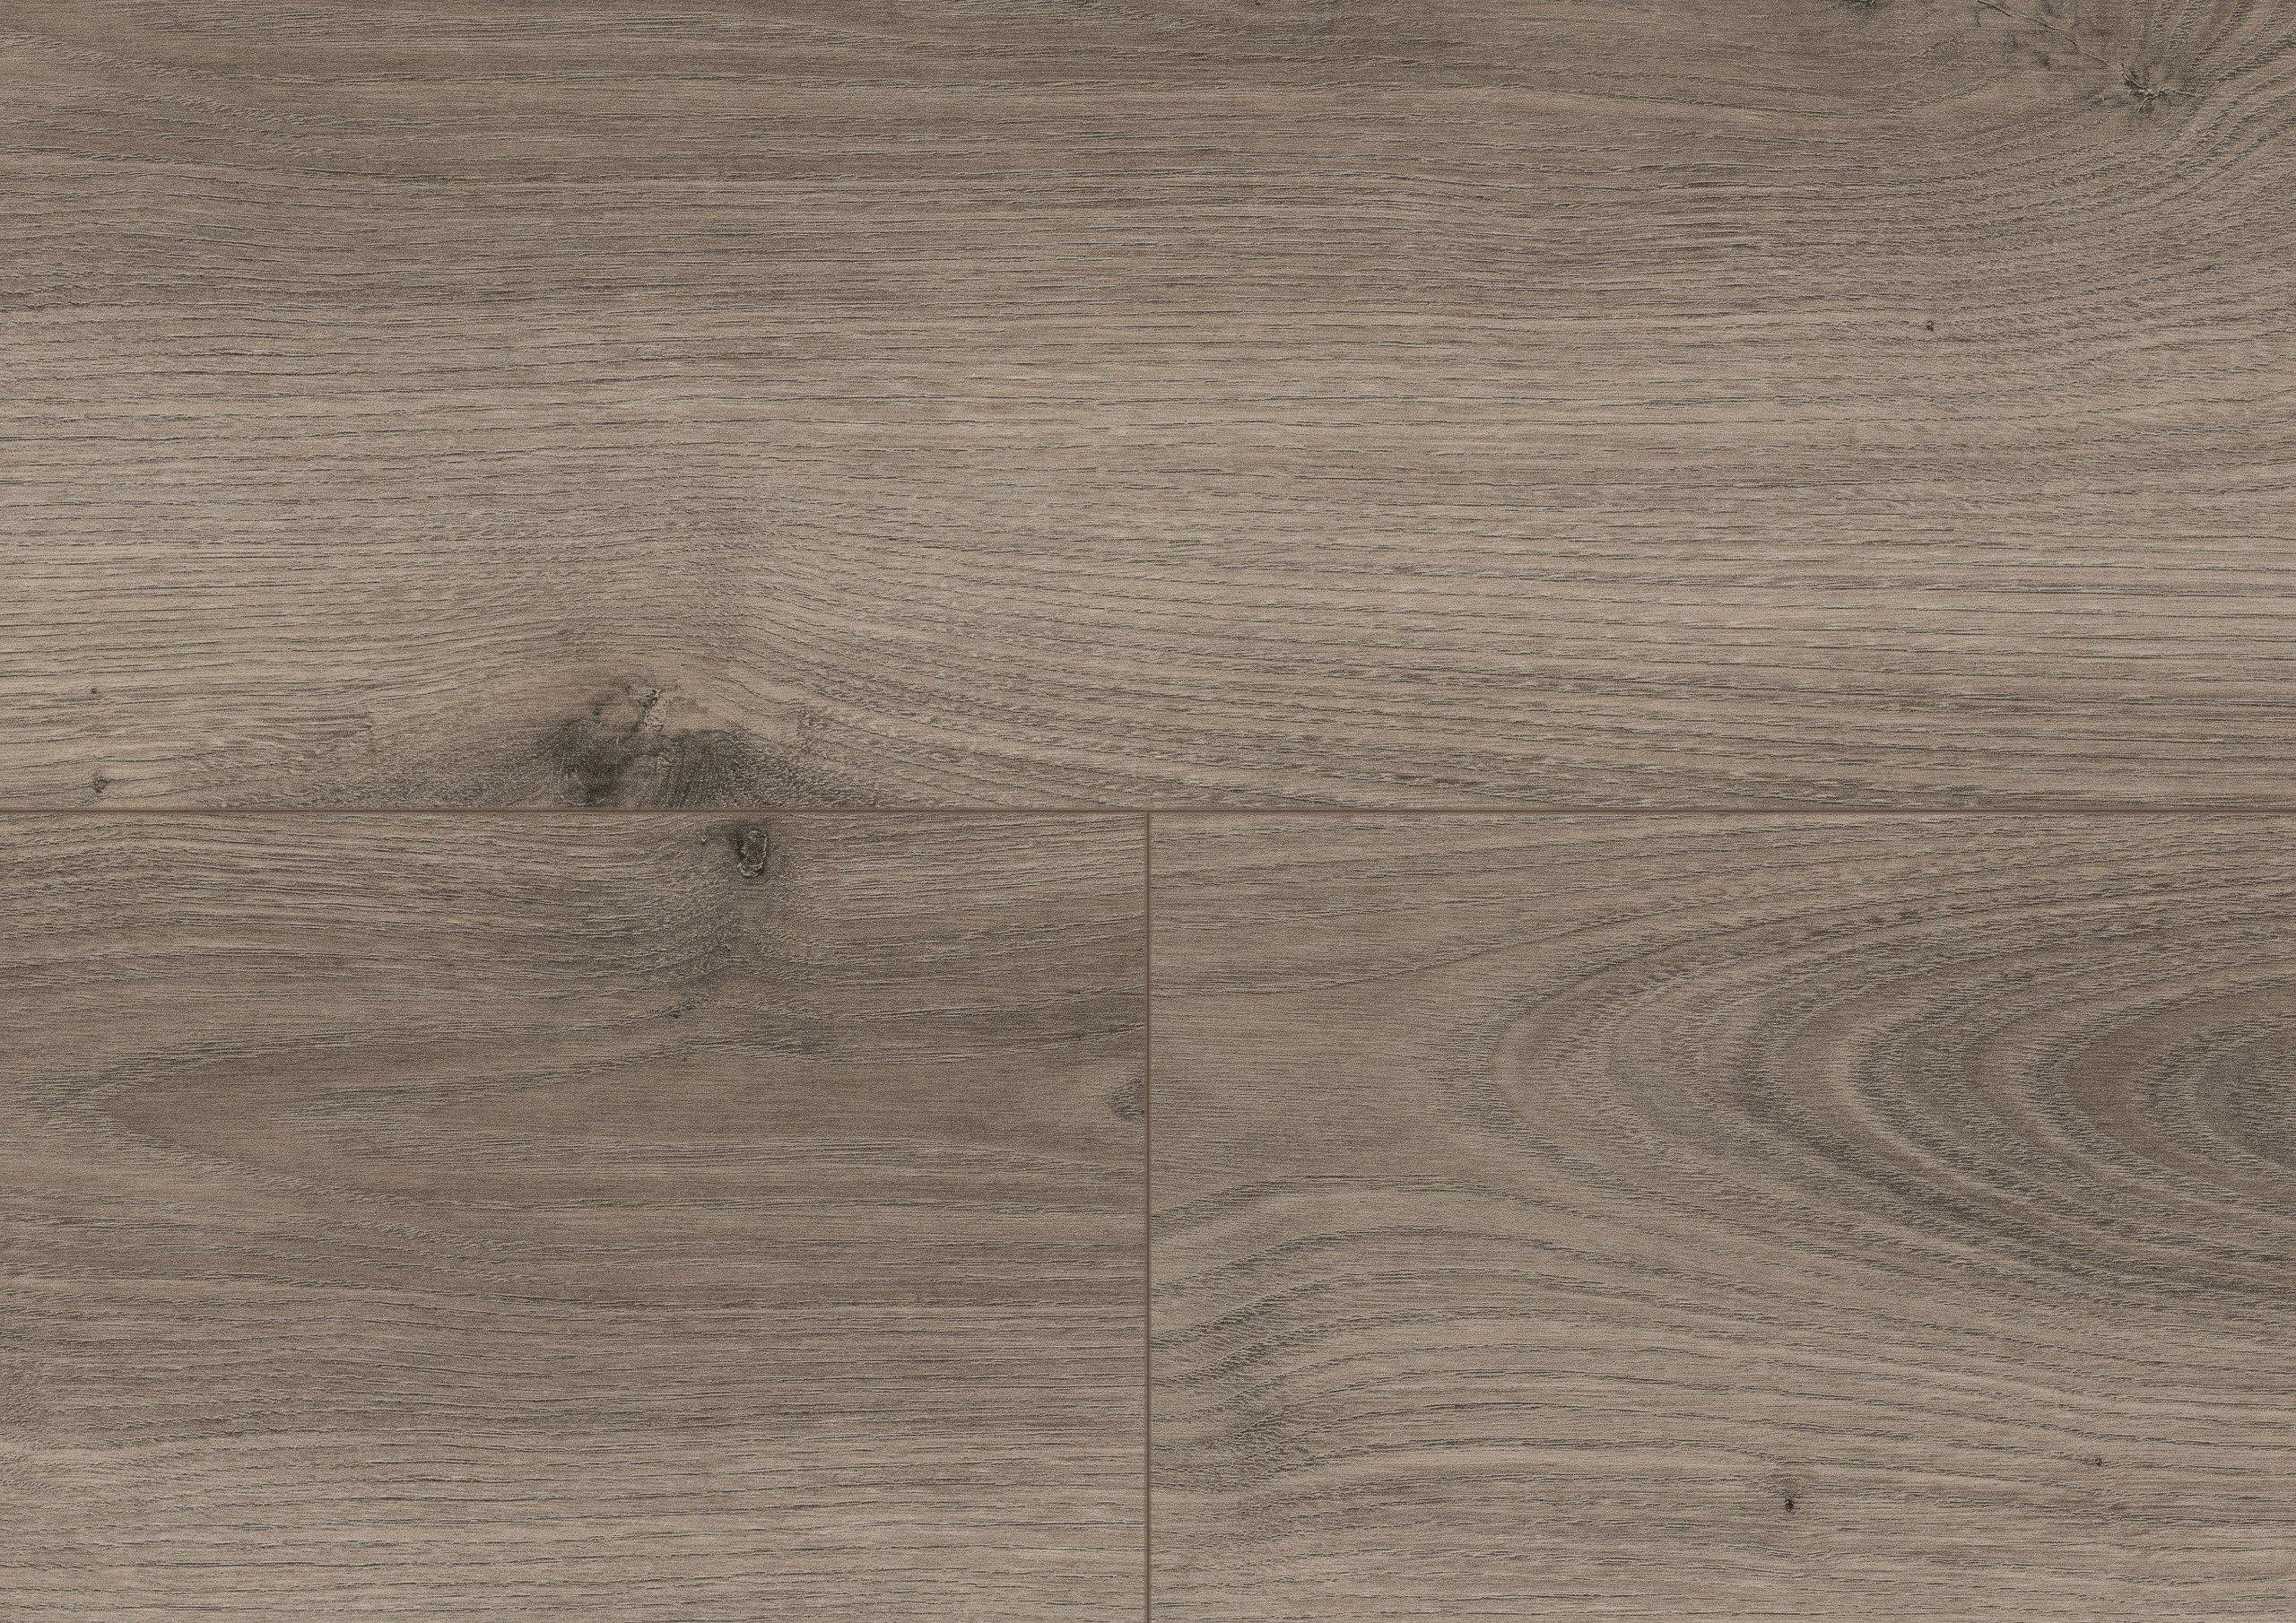 Wood XL - Royal Chestnut Grey - Indent